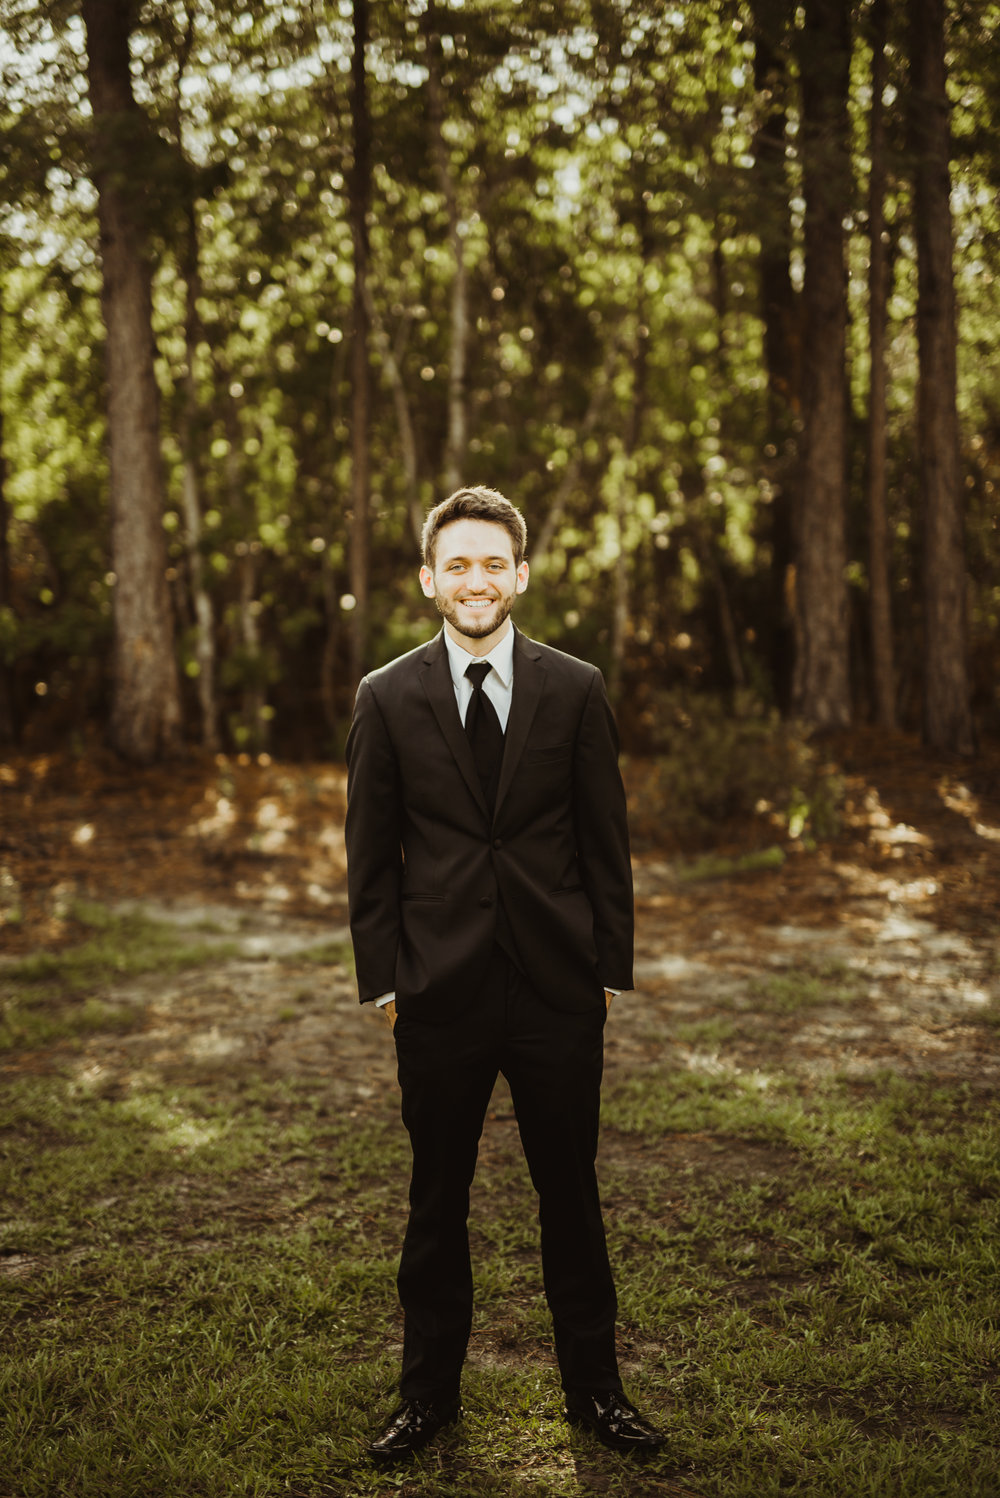 ©Isaiah & Taylor Photography - Lakeside Barn Wedding, Private Estate, Poplarville Mississippi-37.jpg